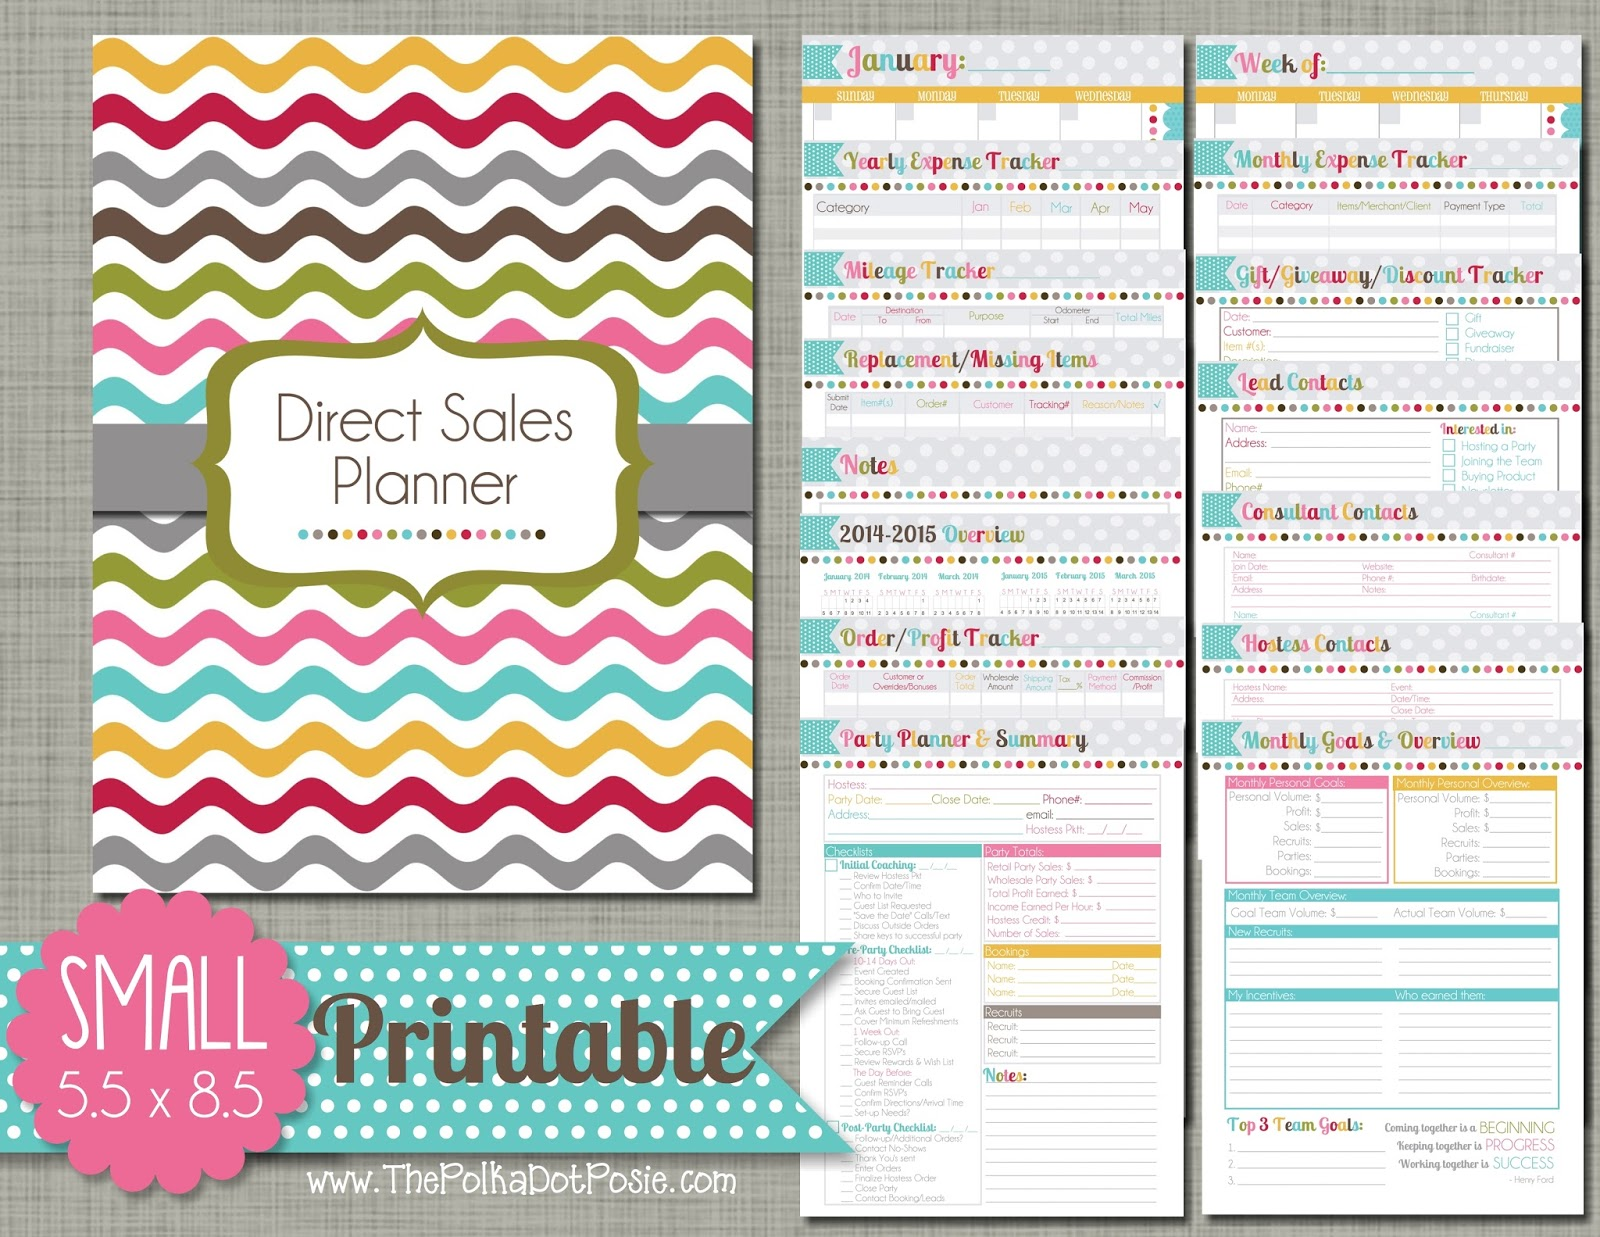 5 Images of Free Printable Business Planner Pages